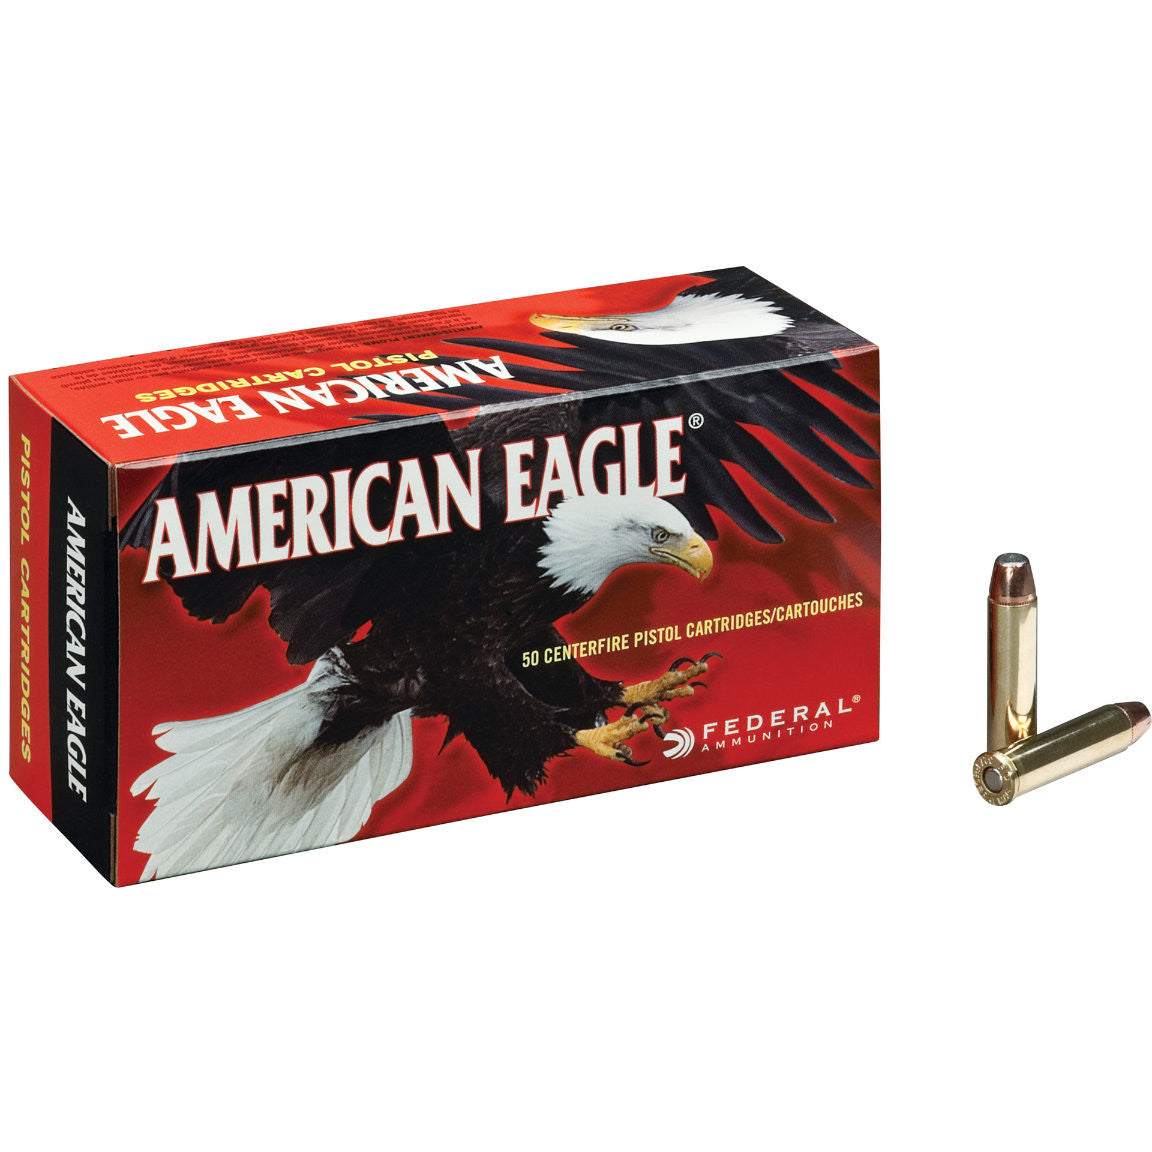 American Eagle Centerfire Pistol Cartridges - 9mm Luger 115gr FMJ